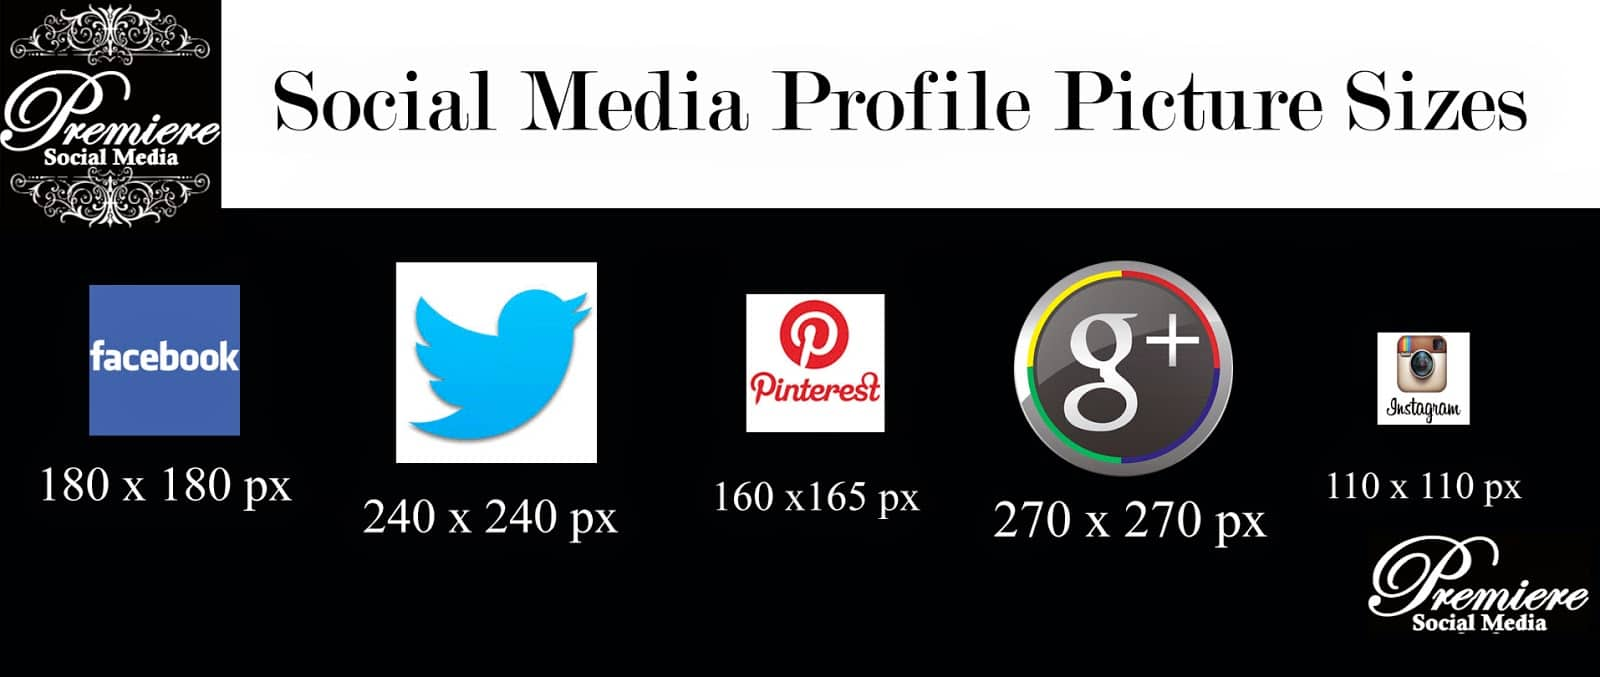 Profile Pictures for Social Media Marketing